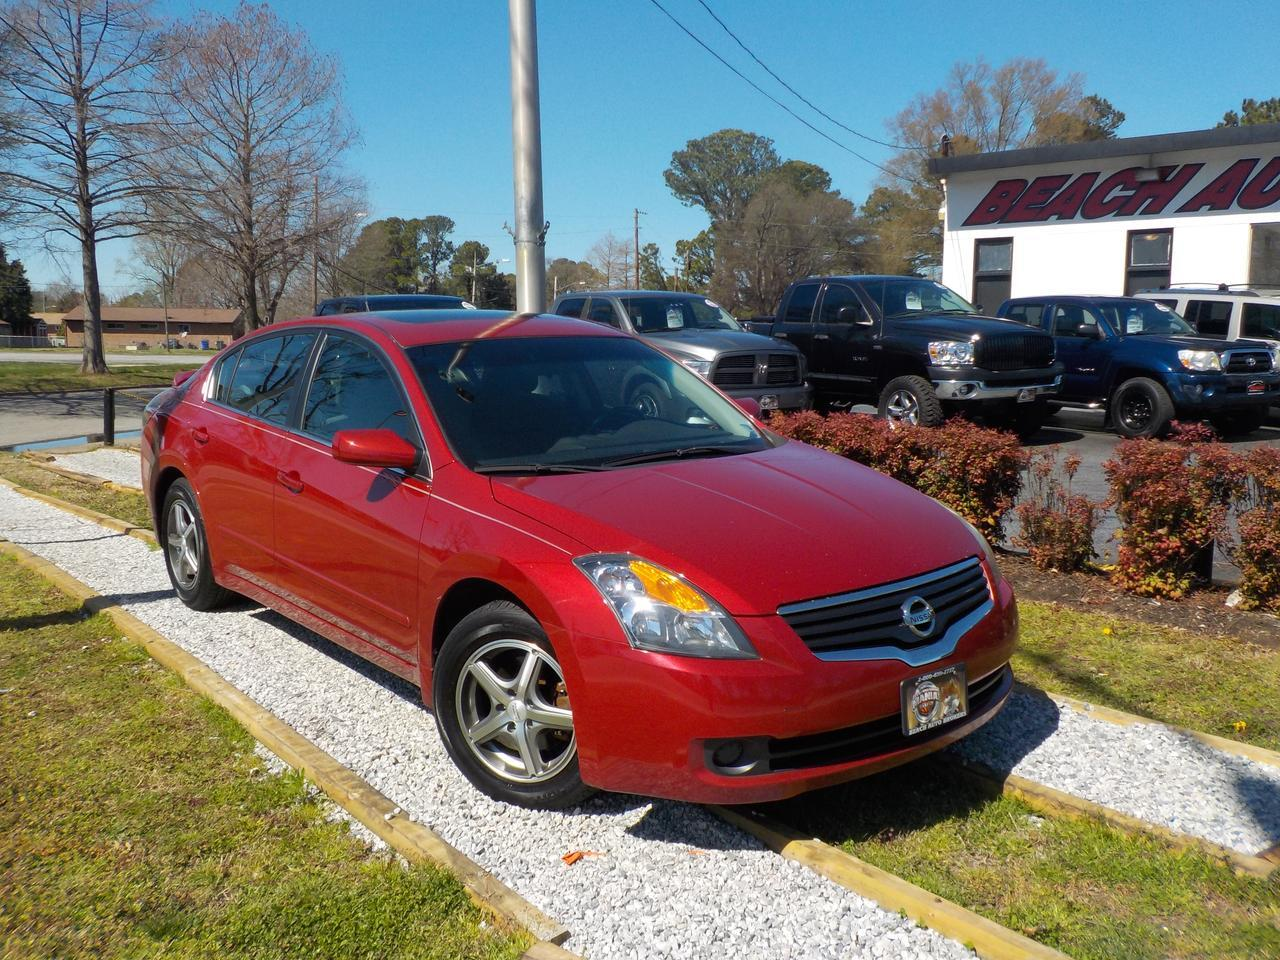 2009 NISSAN ALTIMA S,WARRANTY, SUNROOF, POWER DRIVERS SEAT, CRUISE CONTROL, KEYLESS START, CRUISE CONTROL, THEFT RECOV!